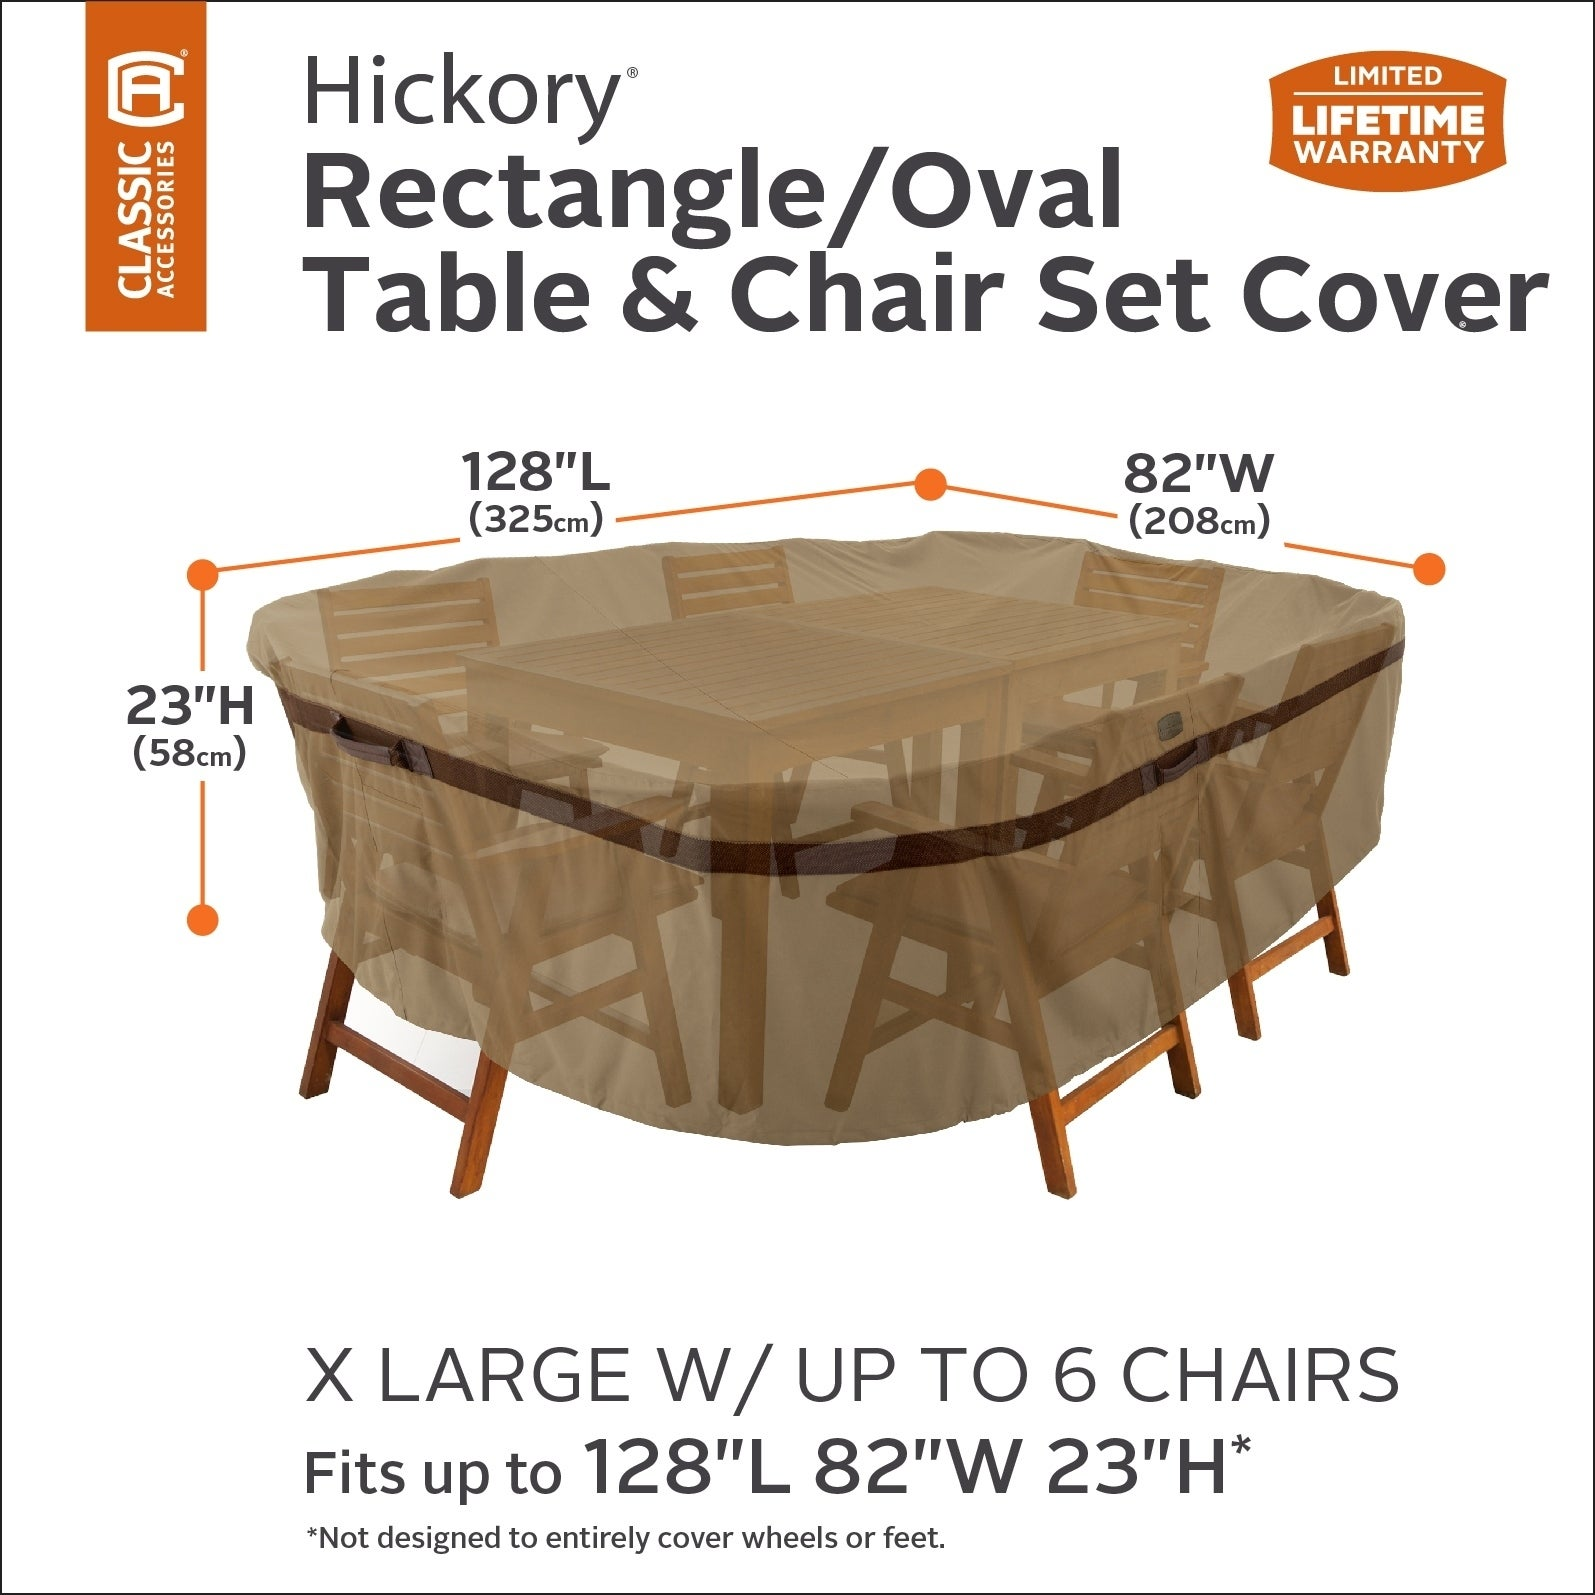 Shop Classic Accessories Hickory Heavy Duty Rectangular Oval Patio